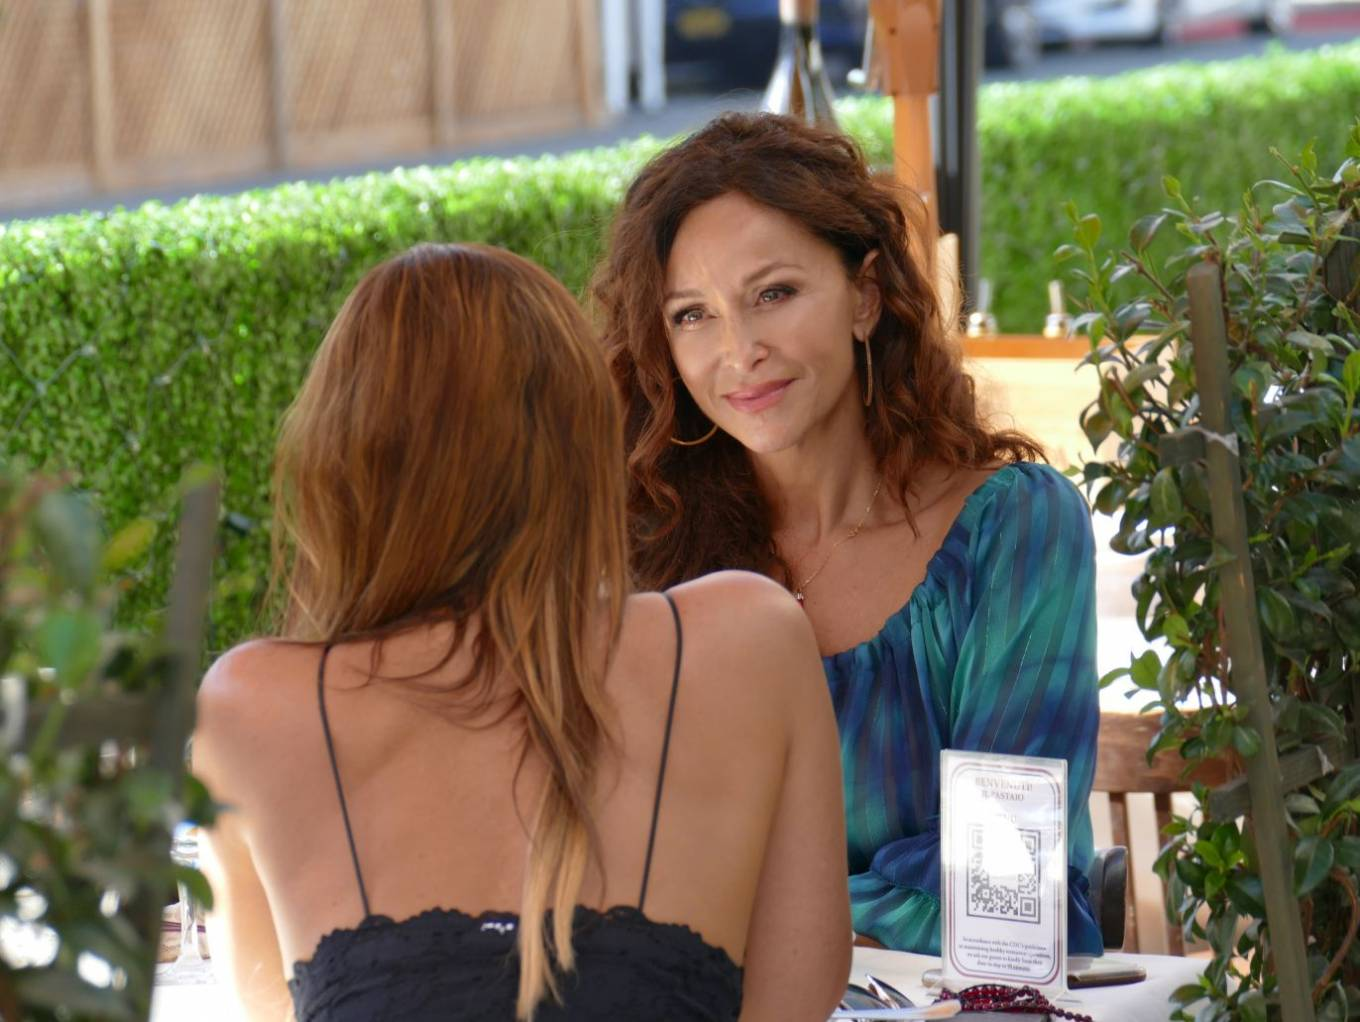 Sofia Milos 2020 : Sofia Milos – Seen at a Lunch With Female Friend-11